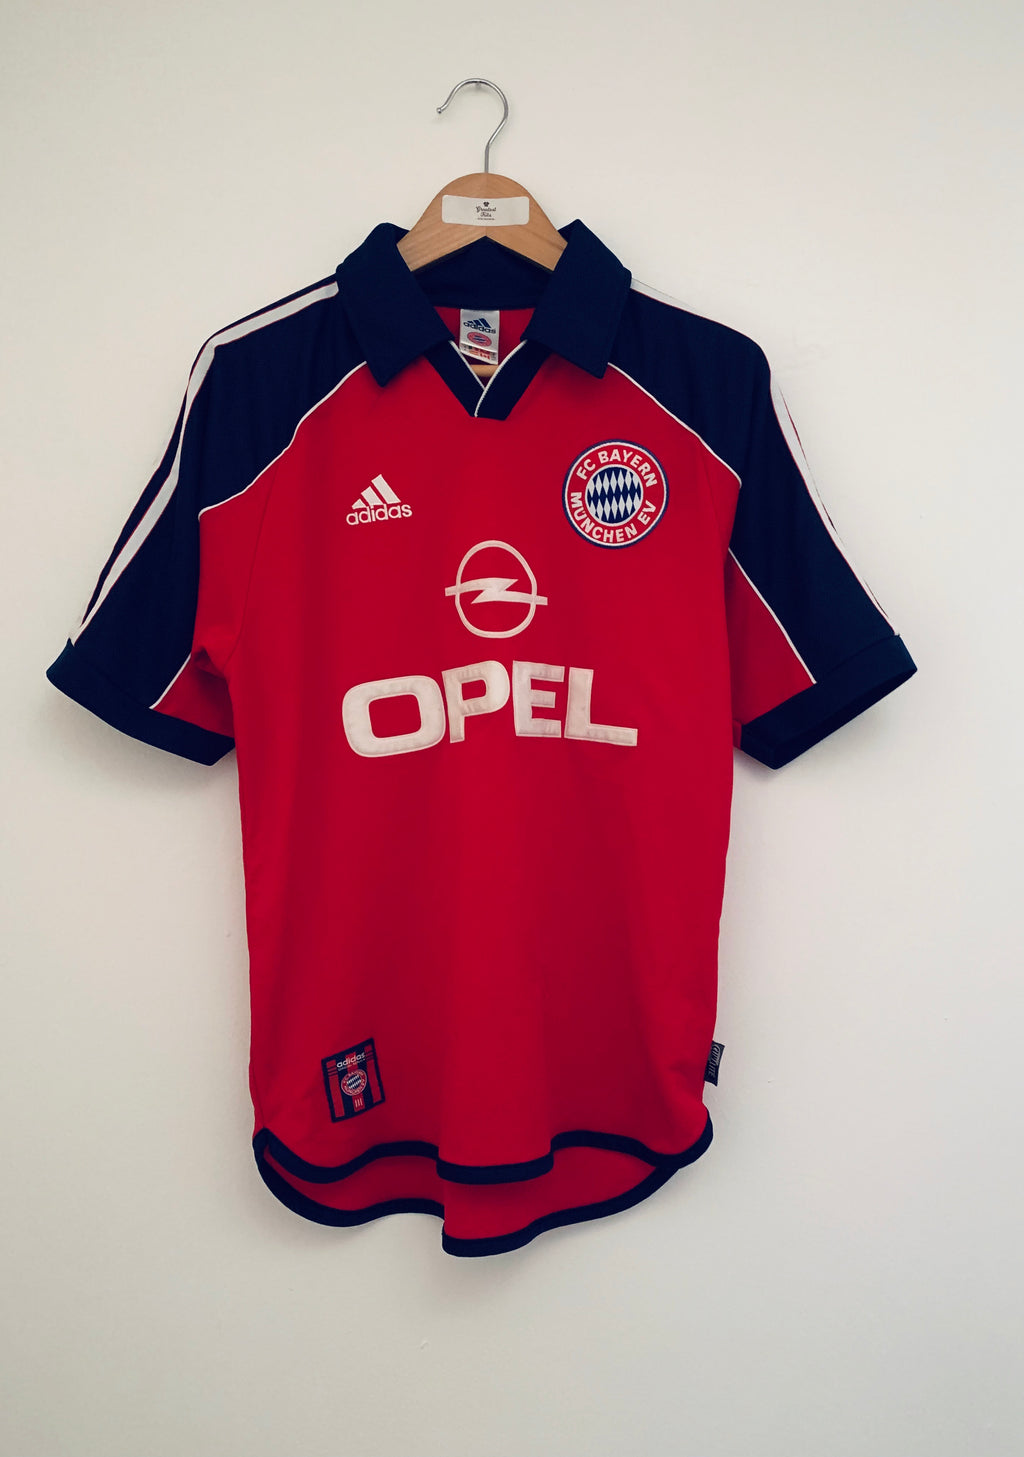 1999/01 Bayern Munich Home Shirt (S) 7.5/10